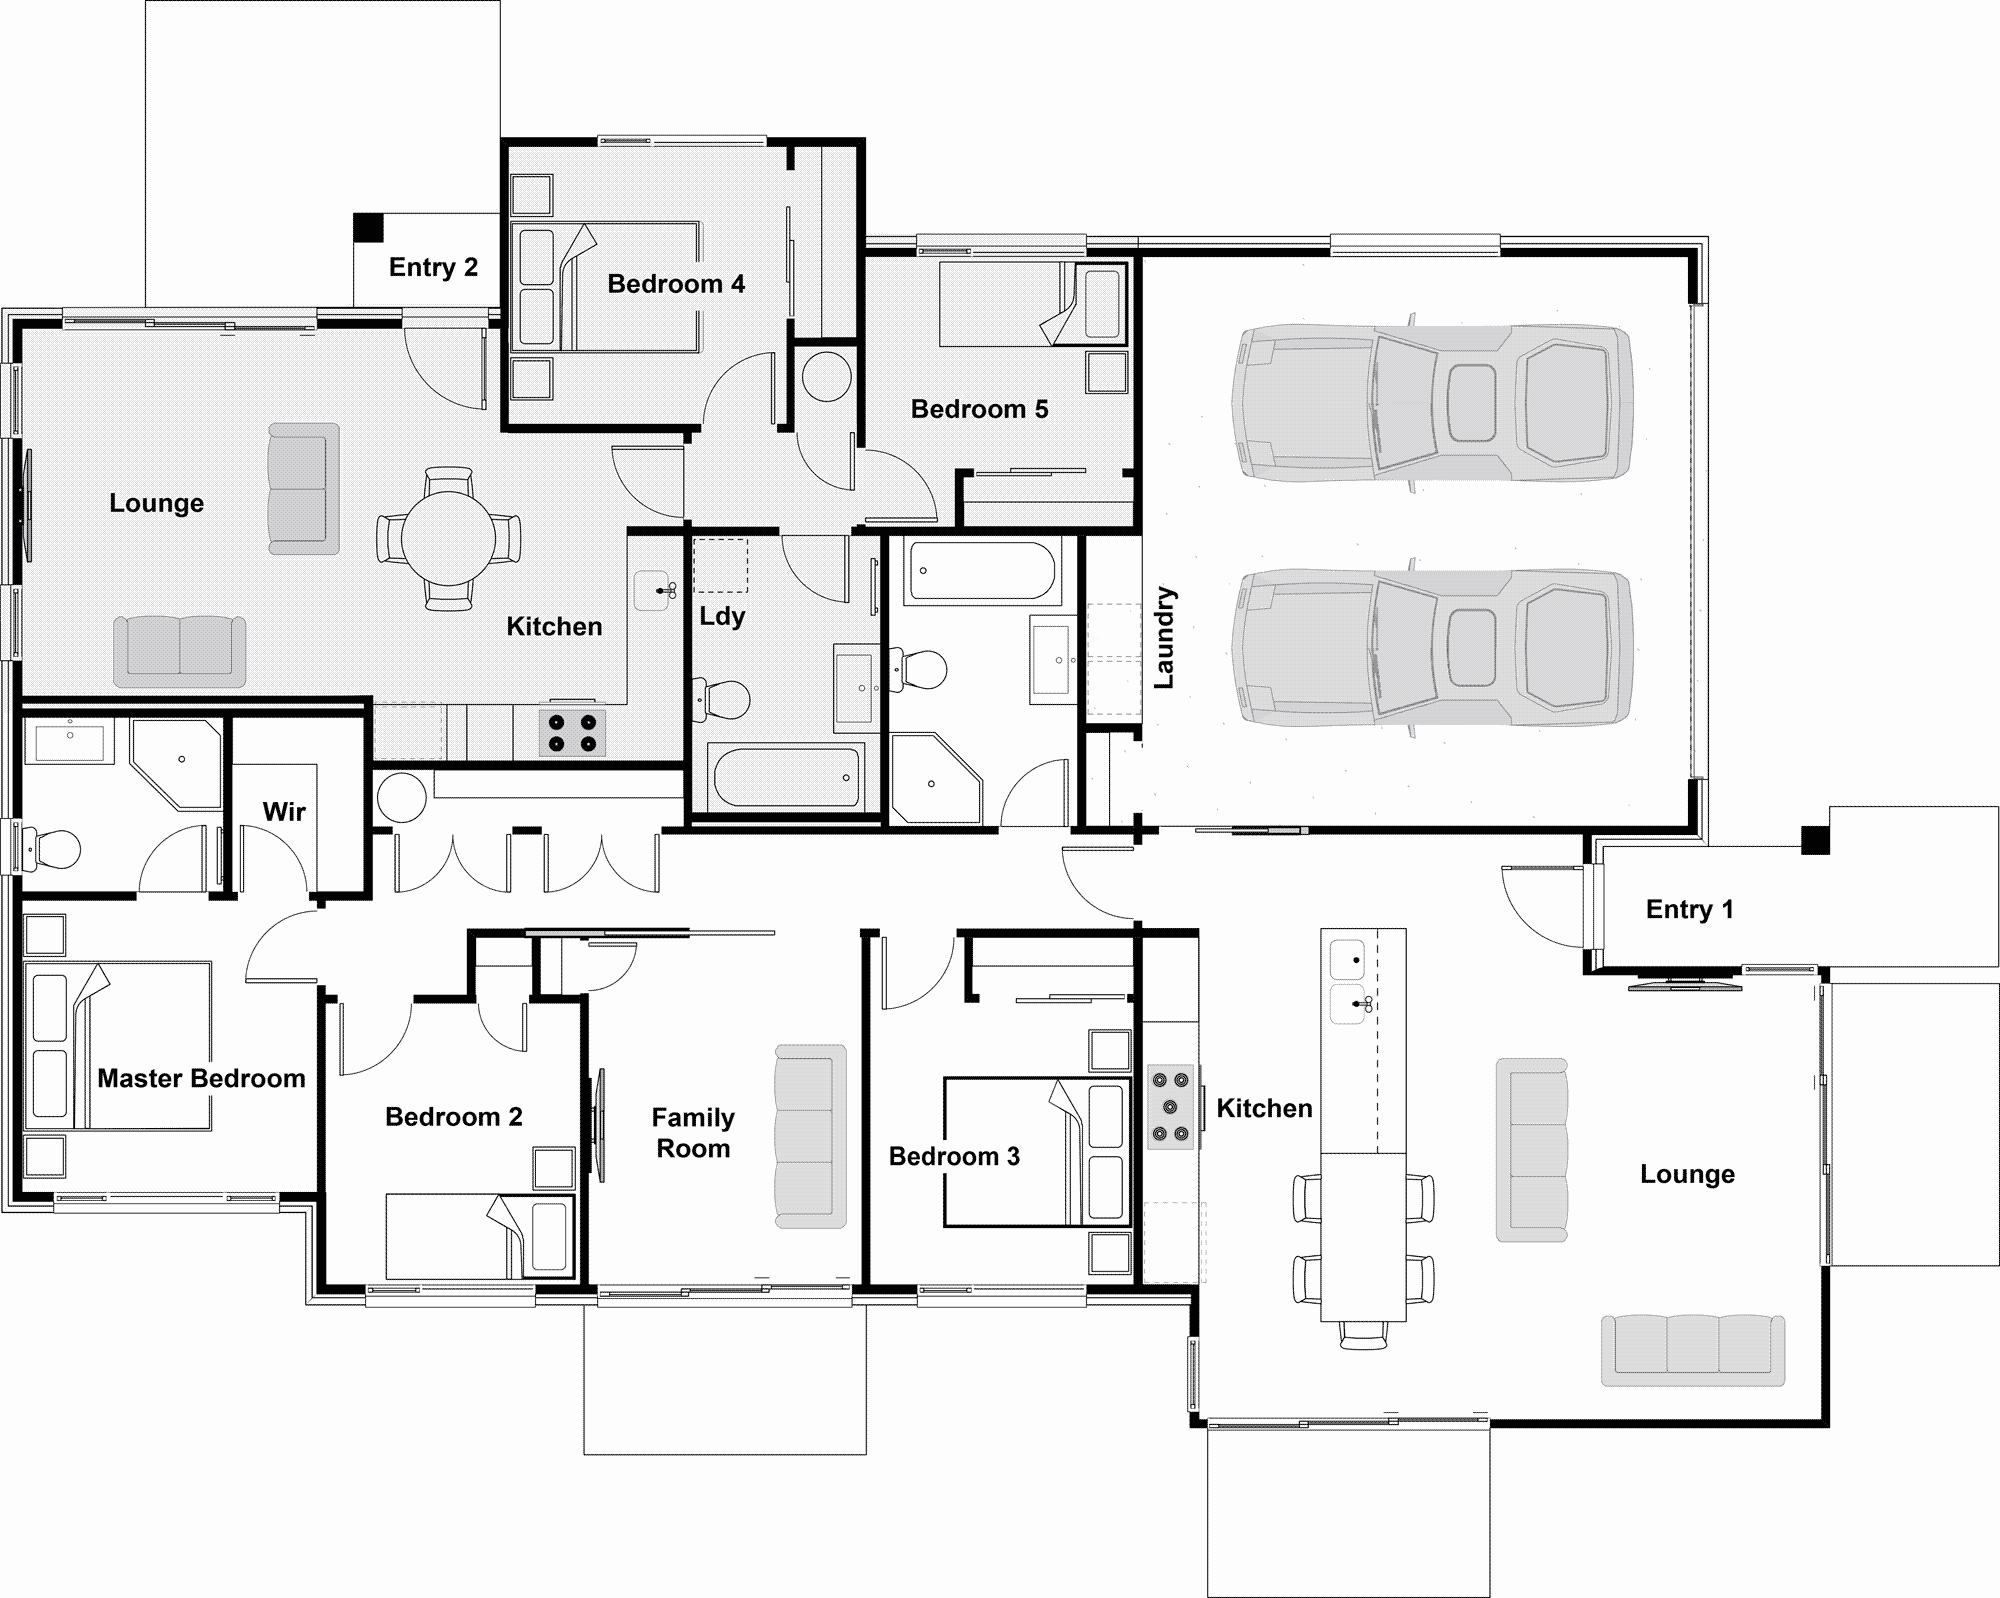 Elegant Split Level House Plans Nz 8 Aim In 2020 Rv Floor Plans Travel Trailer Floor Plans House Plans